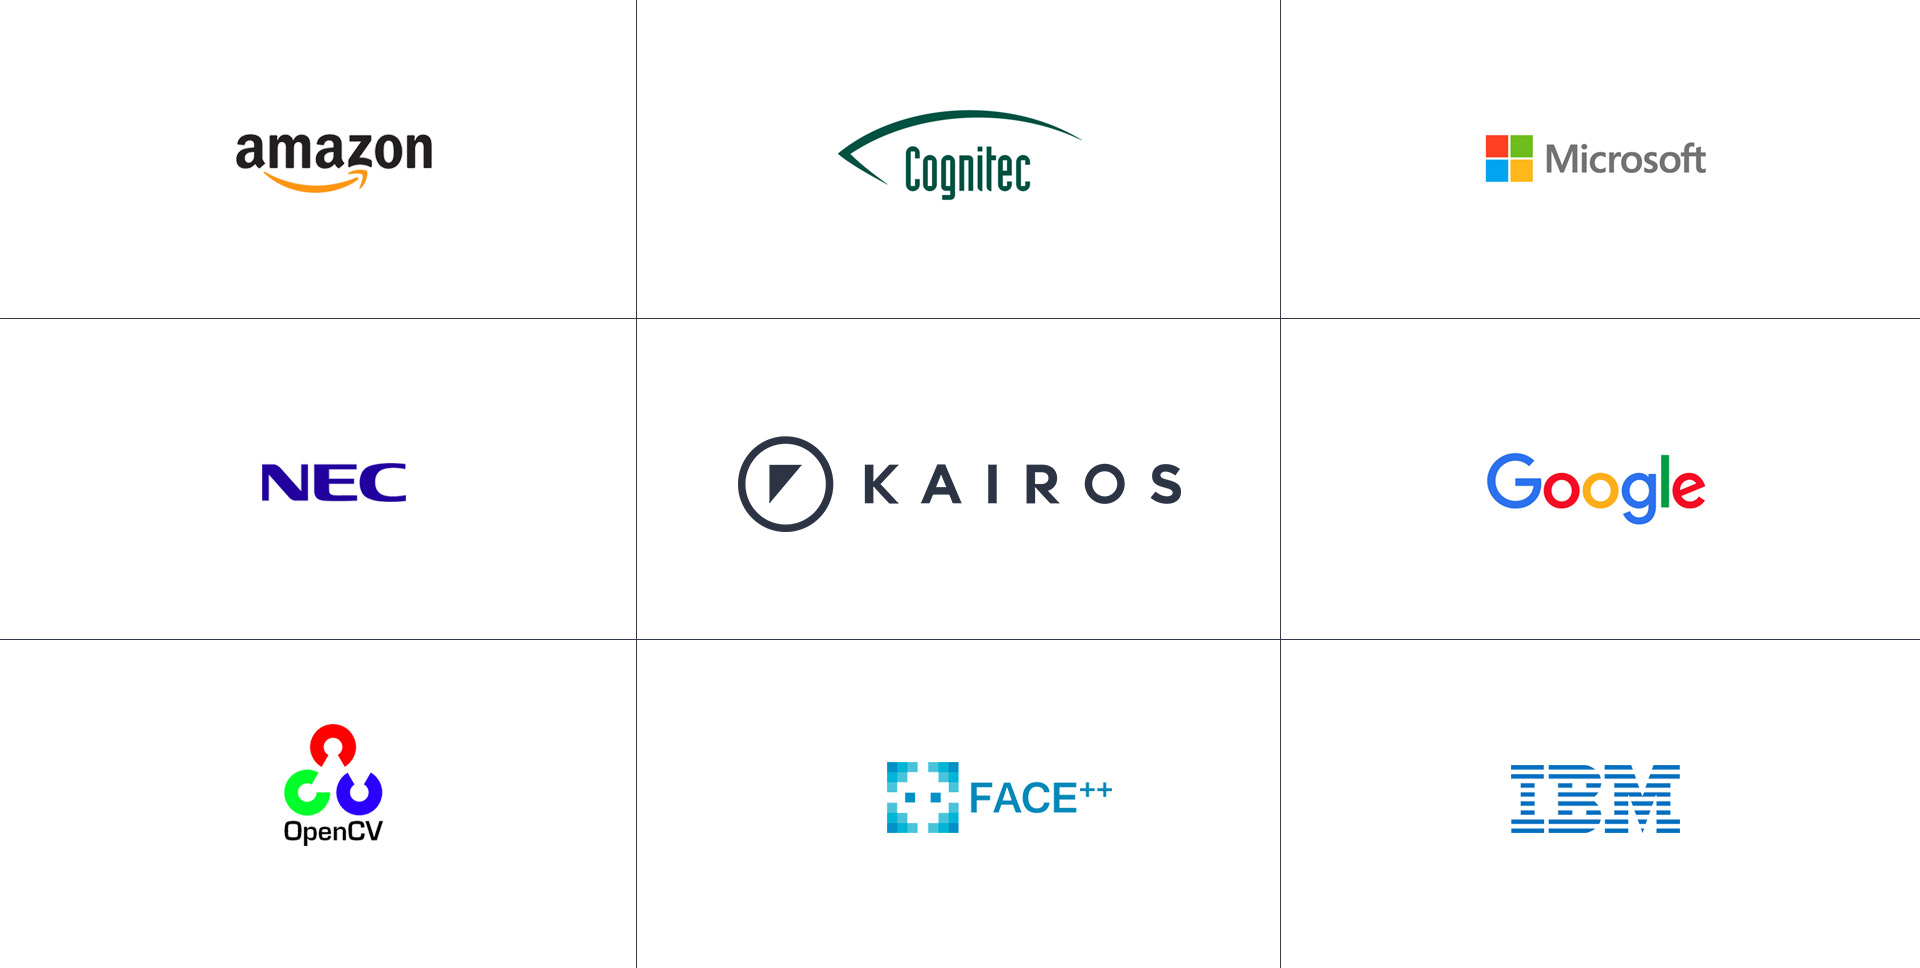 Face Recognition: Kairos vs Microsoft vs Google vs Amazon vs